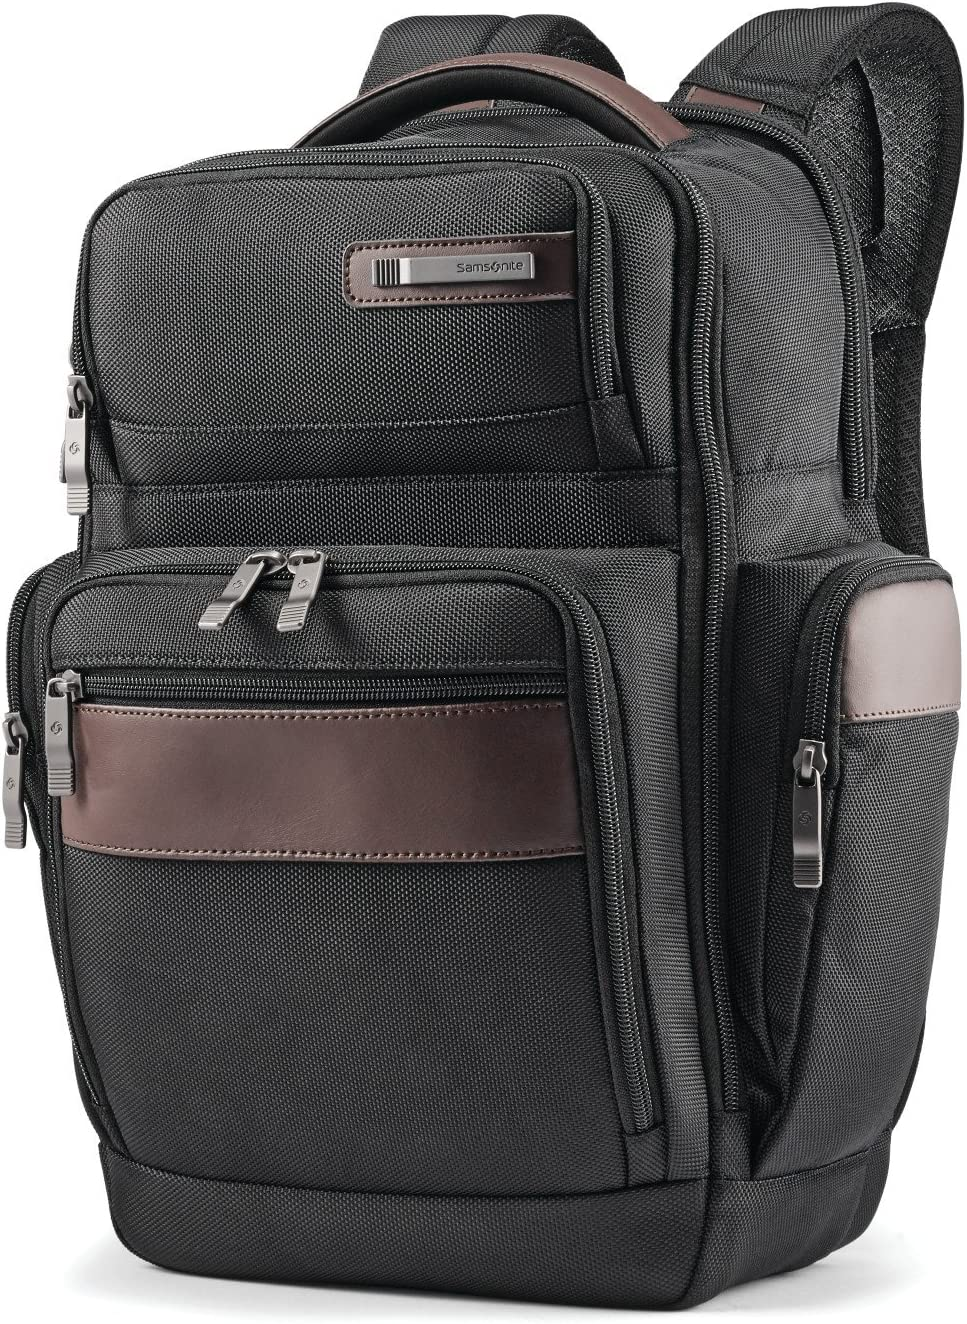 Samsonite Kombi 4 Square Backpack with Smart Sleeve, Black/Brown, 15.75 x 9 x 5.5-Inch